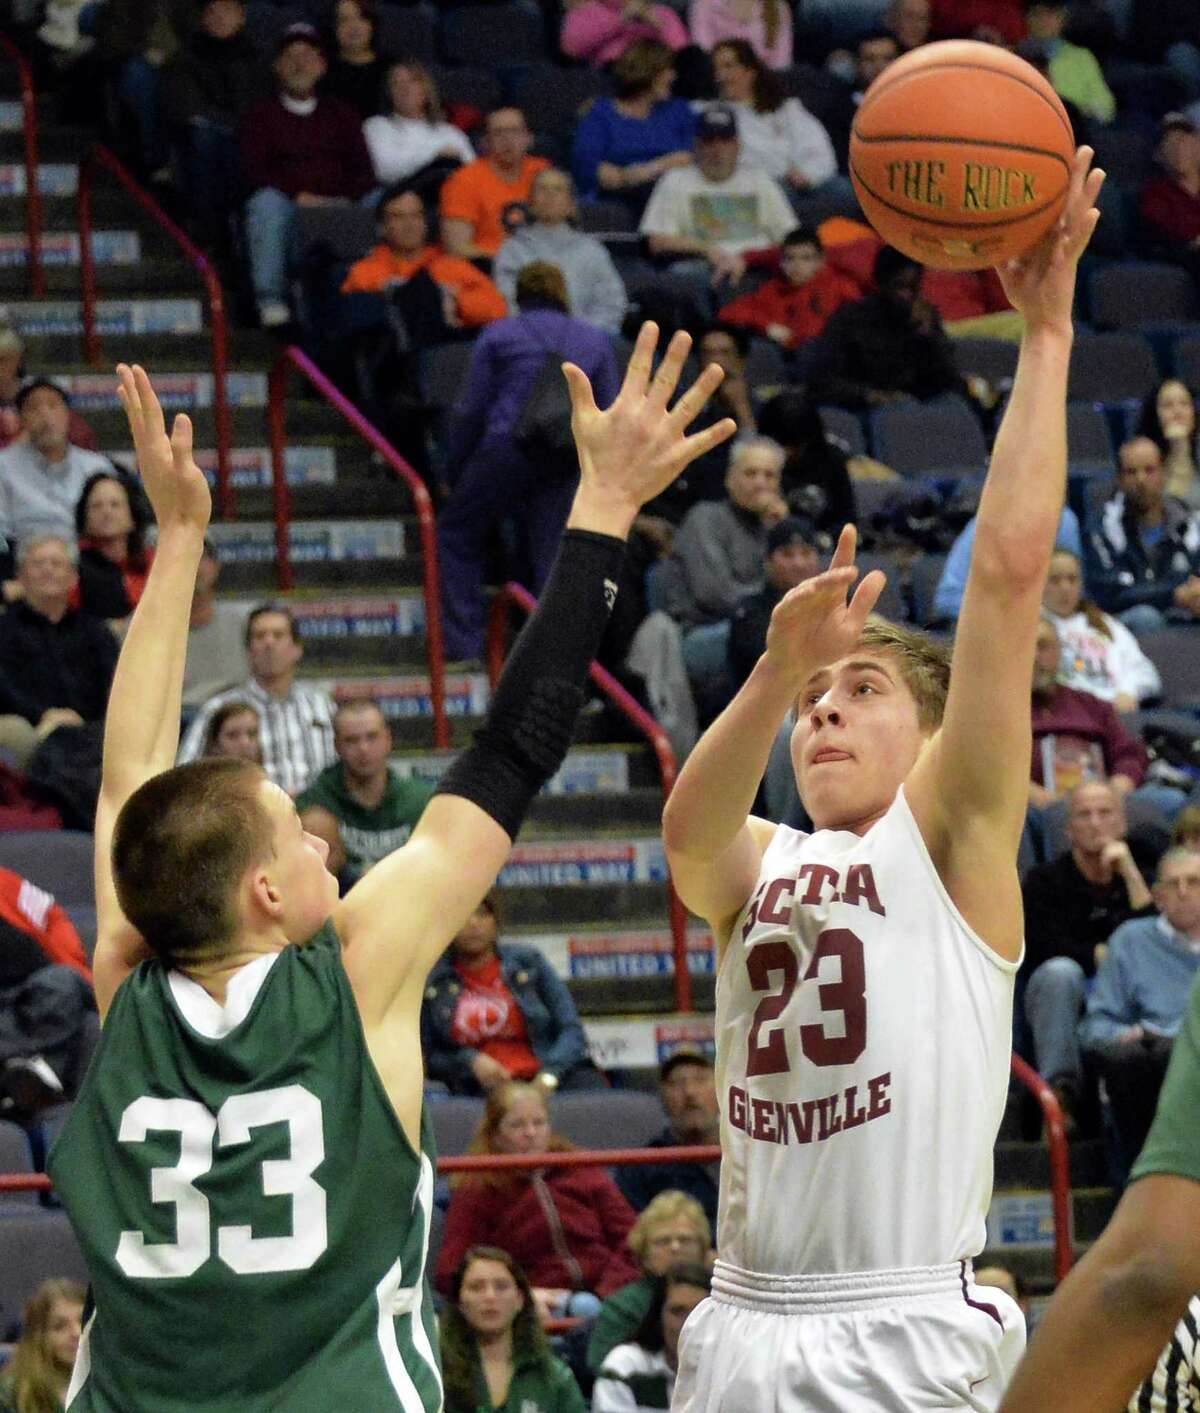 Scotia's #23 Alex Sausville, right, gets a shot past Holy Trinity's #33 James Golaszewski during the Class A Federation boys' basketball final at the Times Union Center Saturday March 22, 2014, in Albany, NY. (John Carl D'Annibale / Times Union)